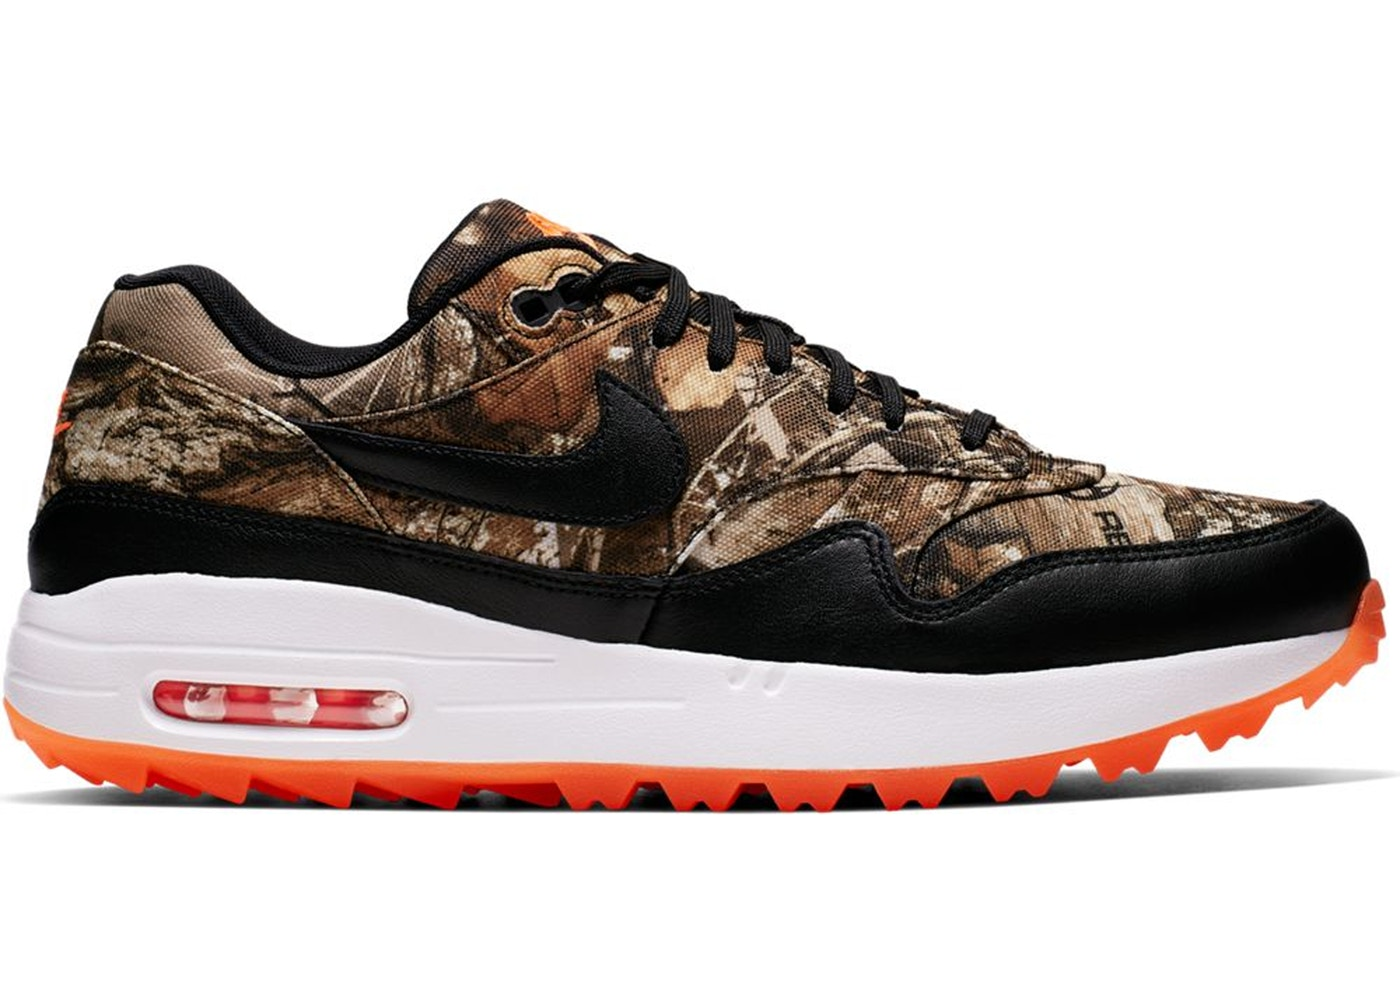 Now Available: Nike Air Max 1 Golf